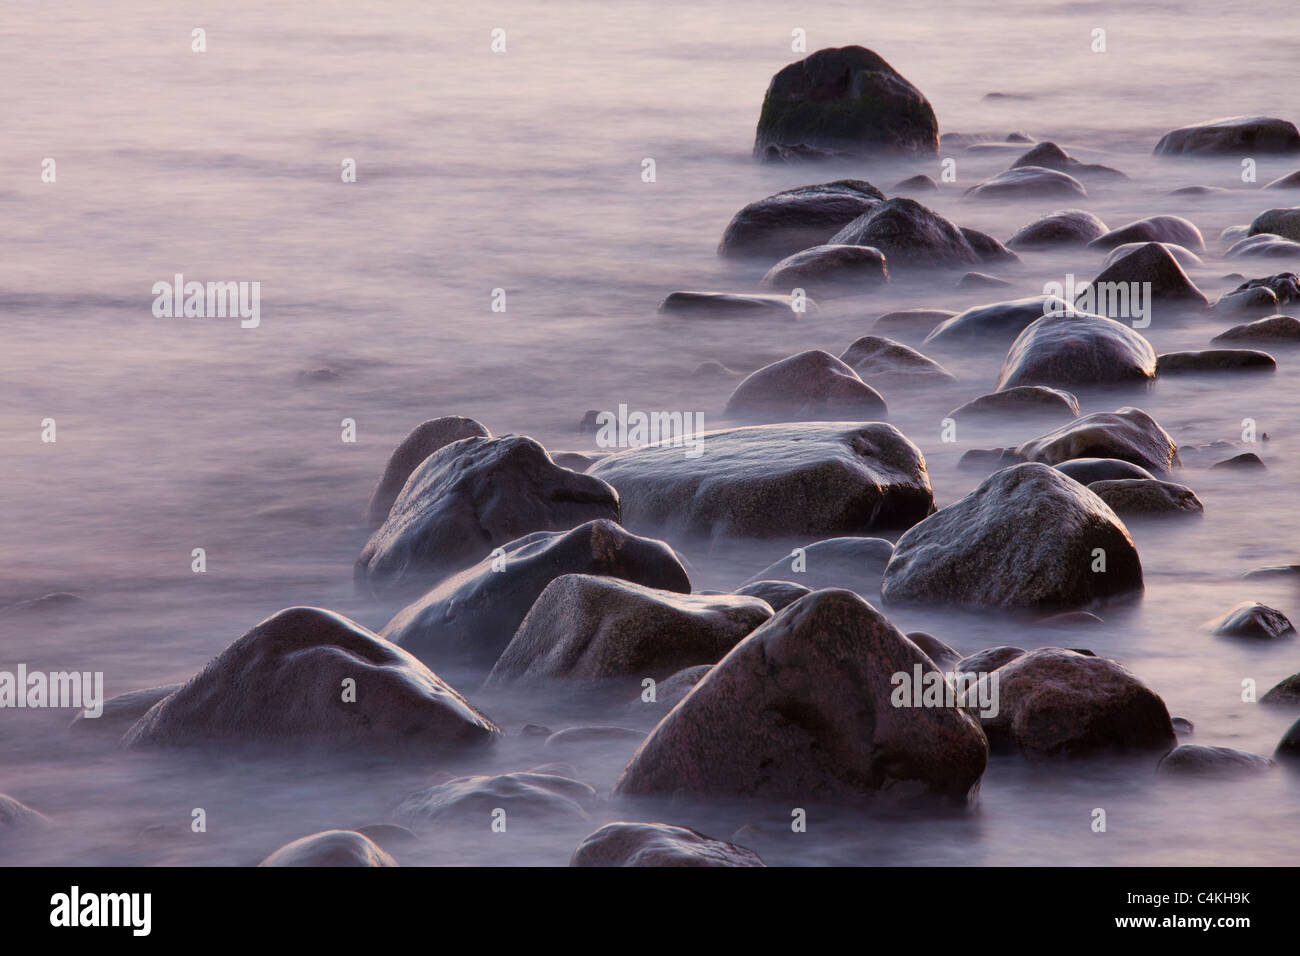 Rocks and pebbles on beach in the surf at low tide, Germany - Stock Image